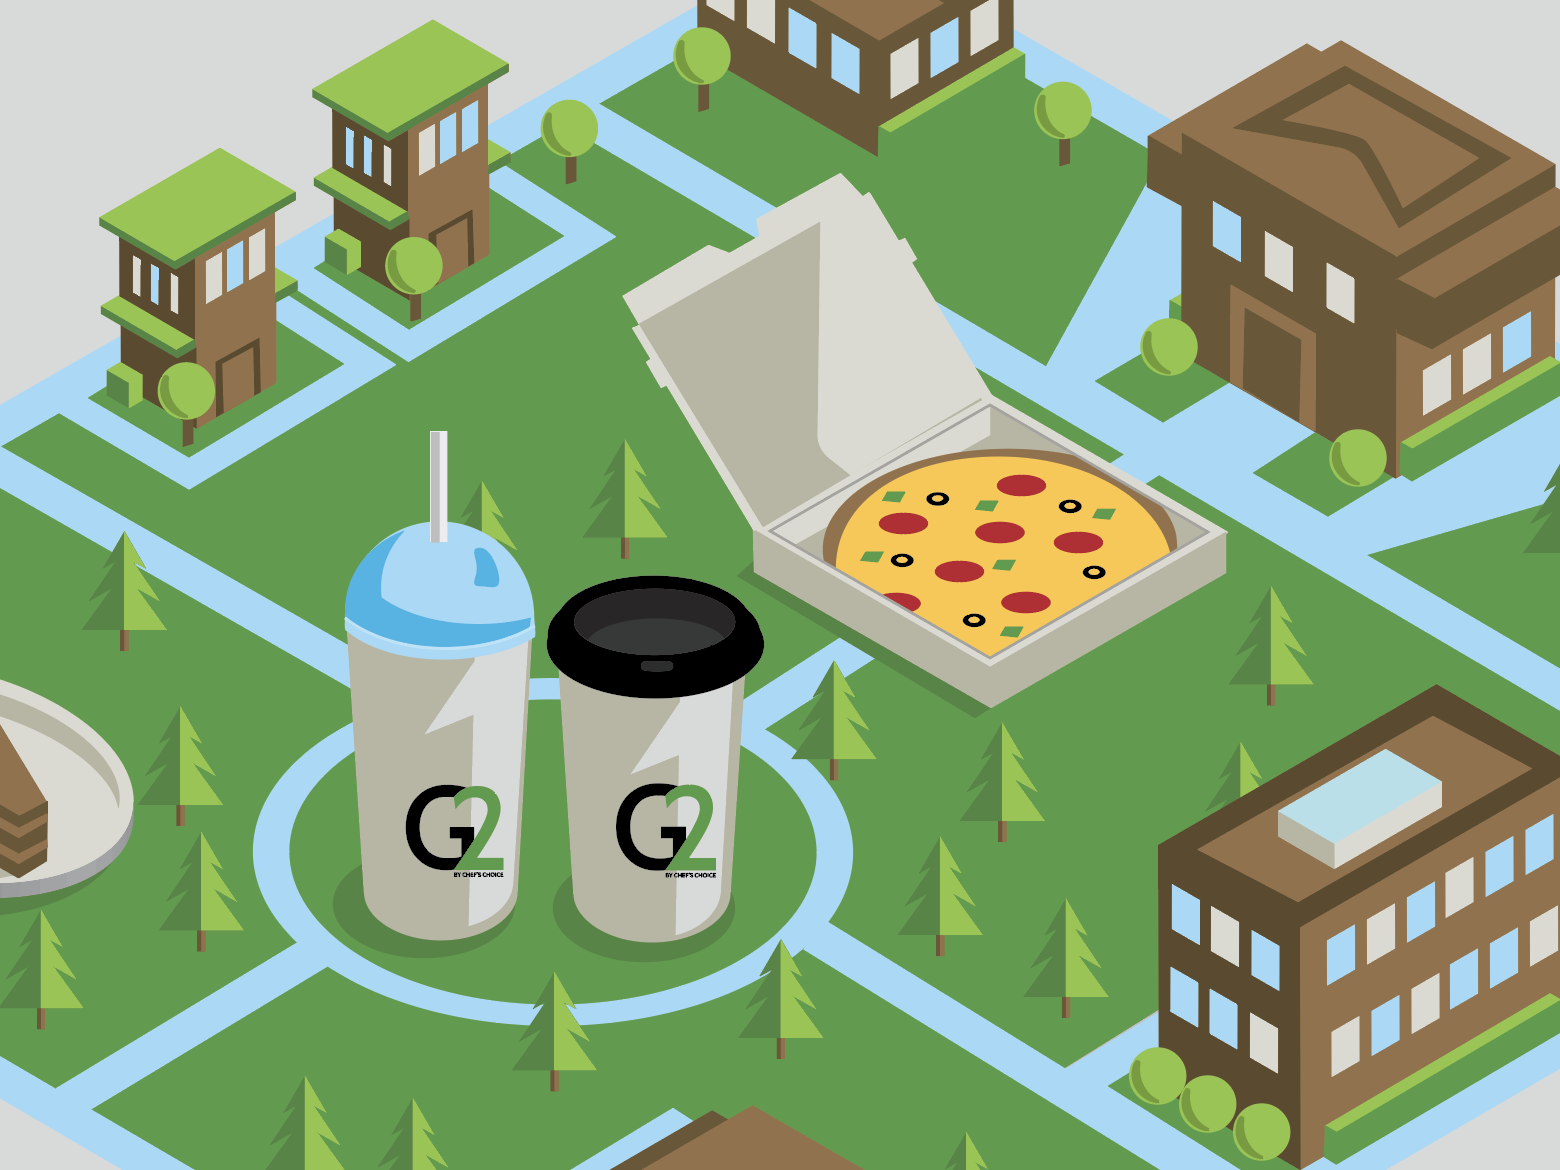 G2 ISO Graphic (update detail) eco friendly coffee town trees grass slurpee iso building cup pizza